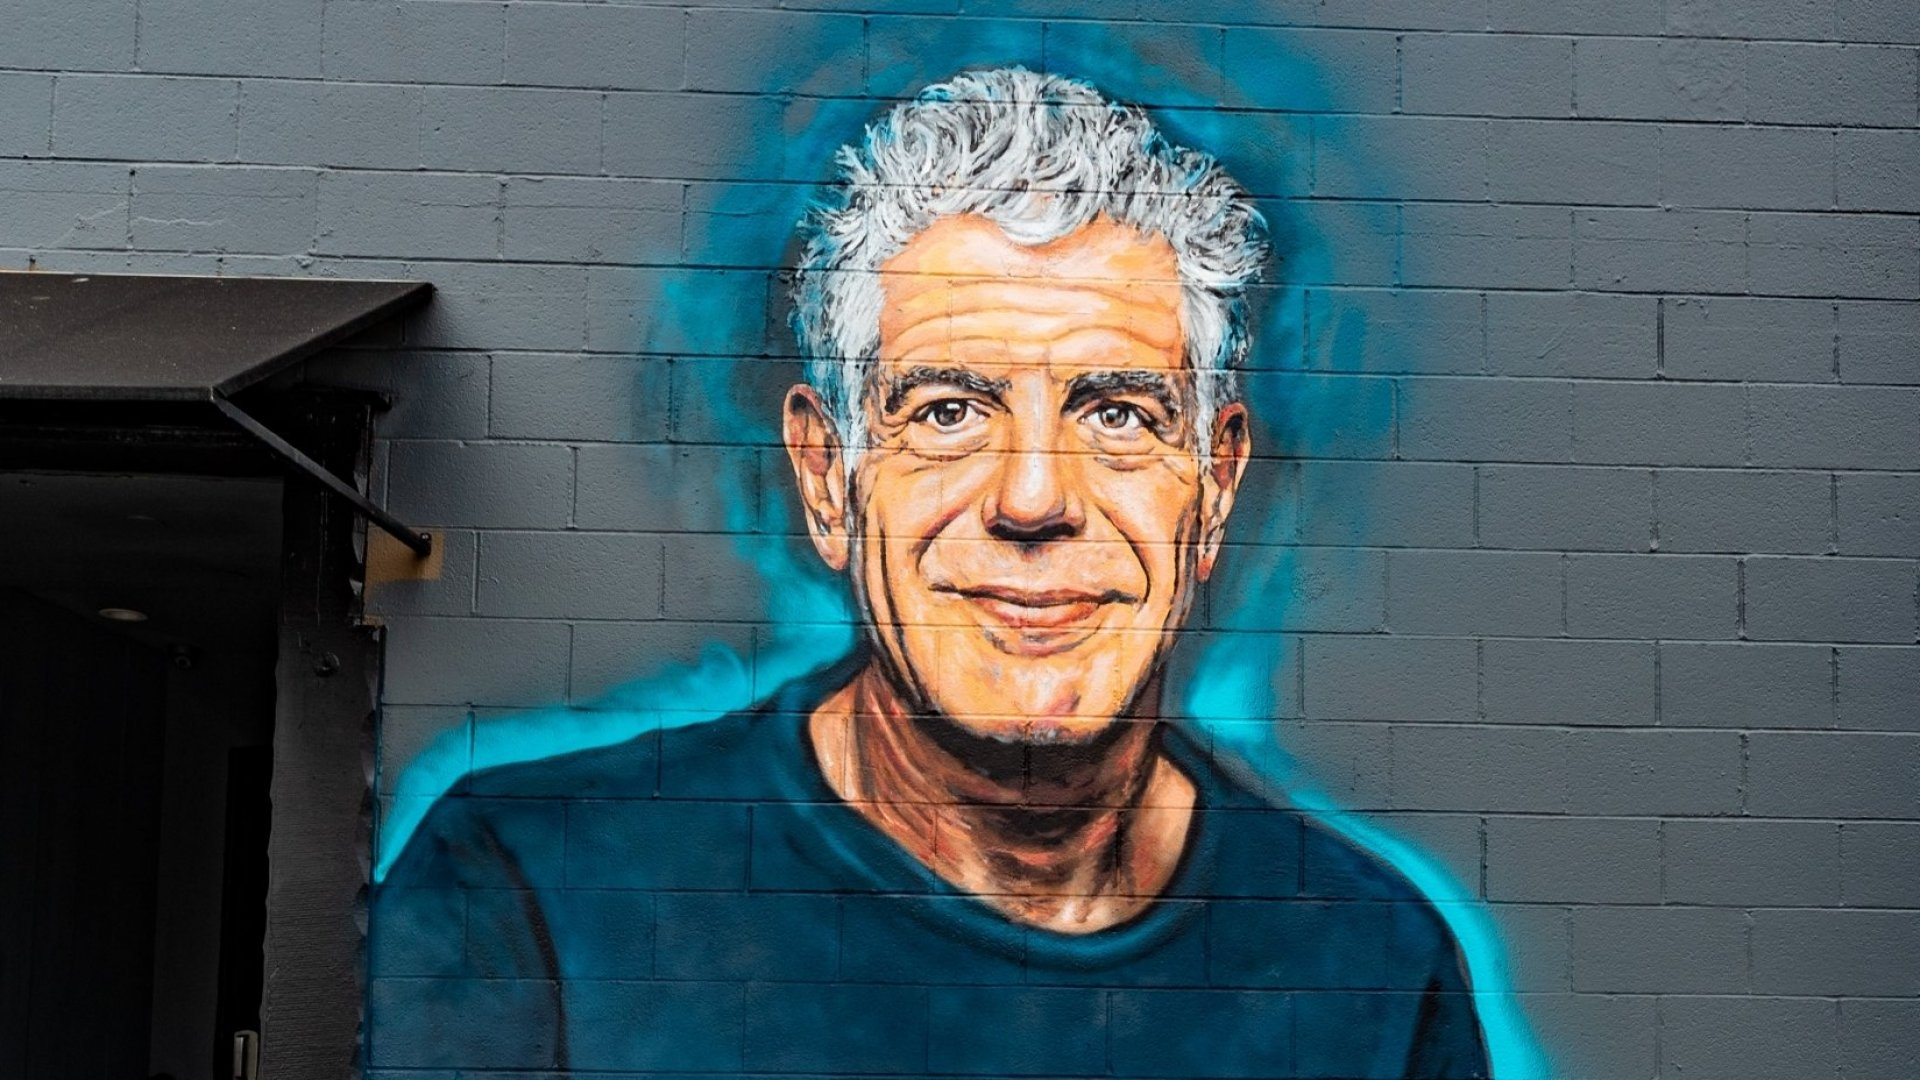 A mural of Anthony Bourdain in Santa Monica, California, by Jonas Never.